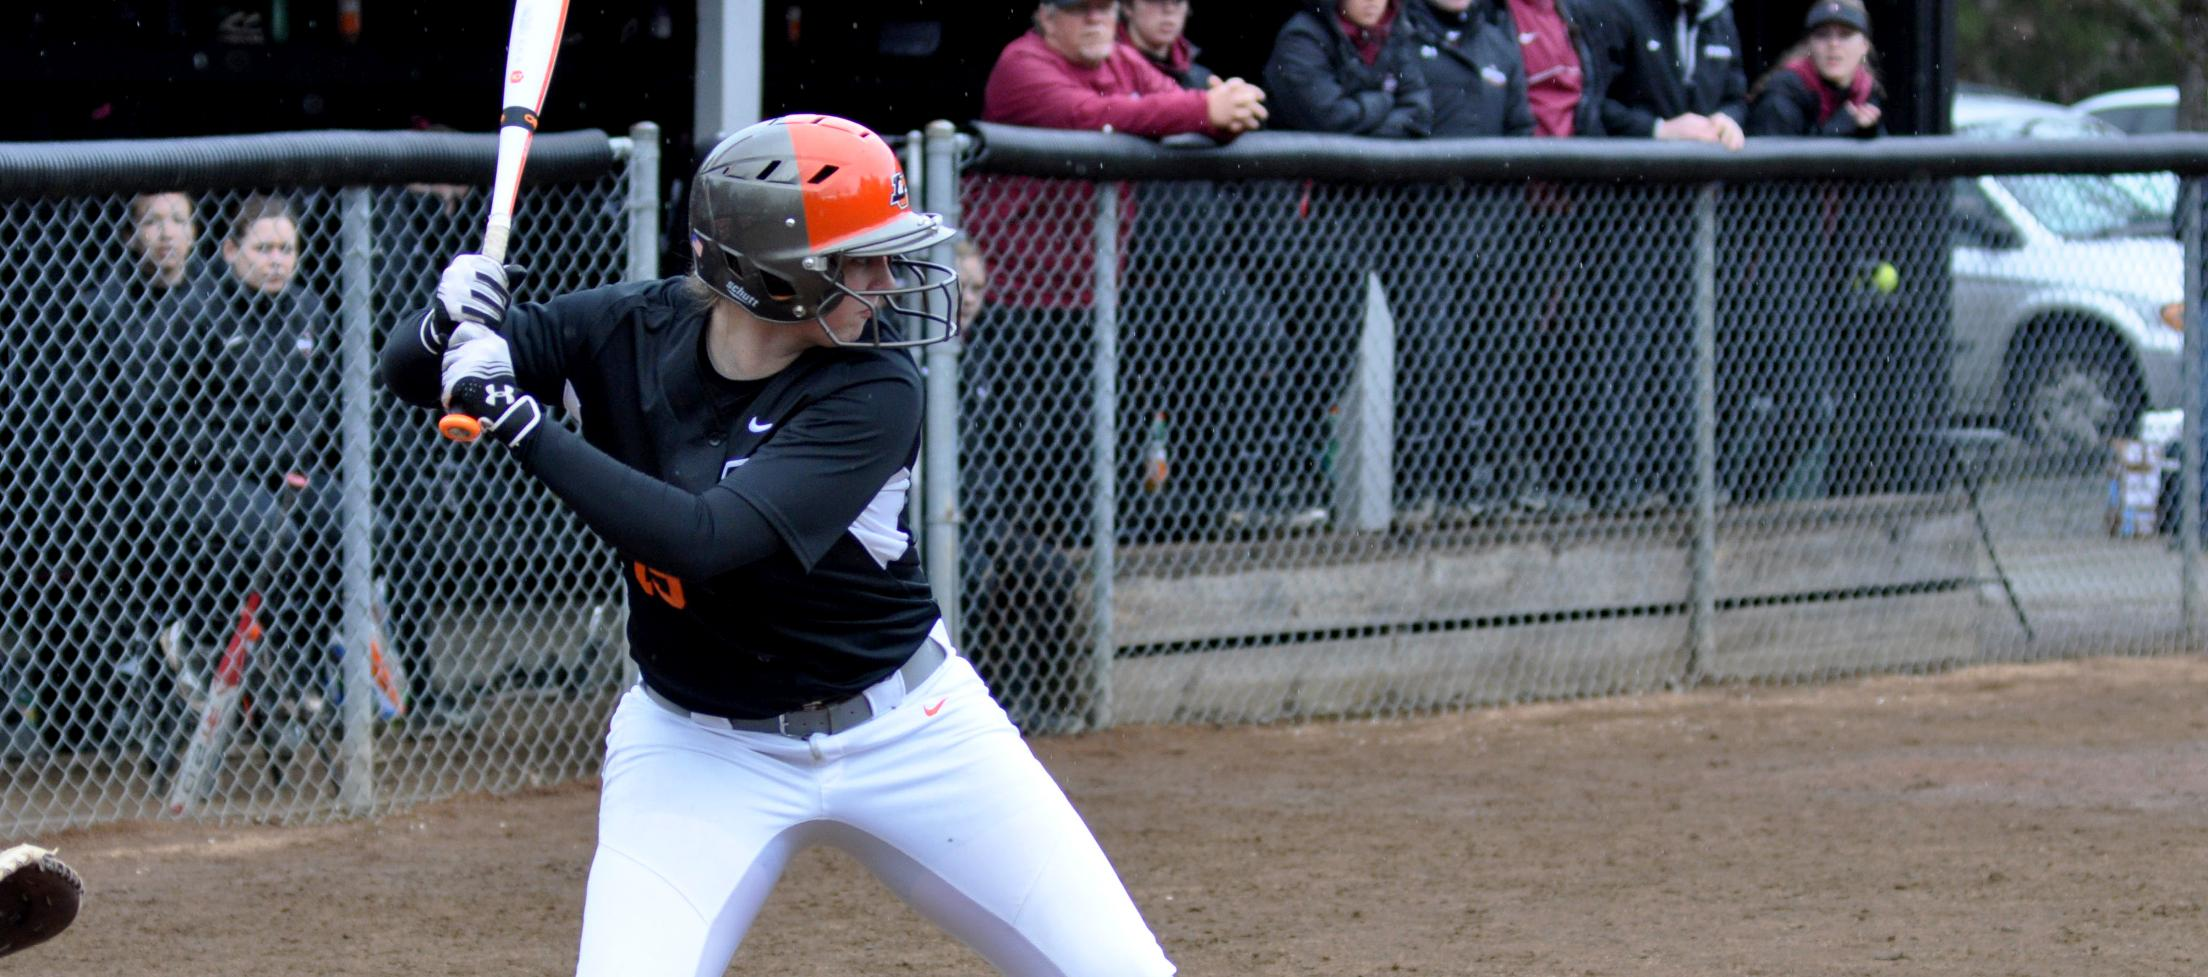 Pios unable to bring runners to plate in make-up loss